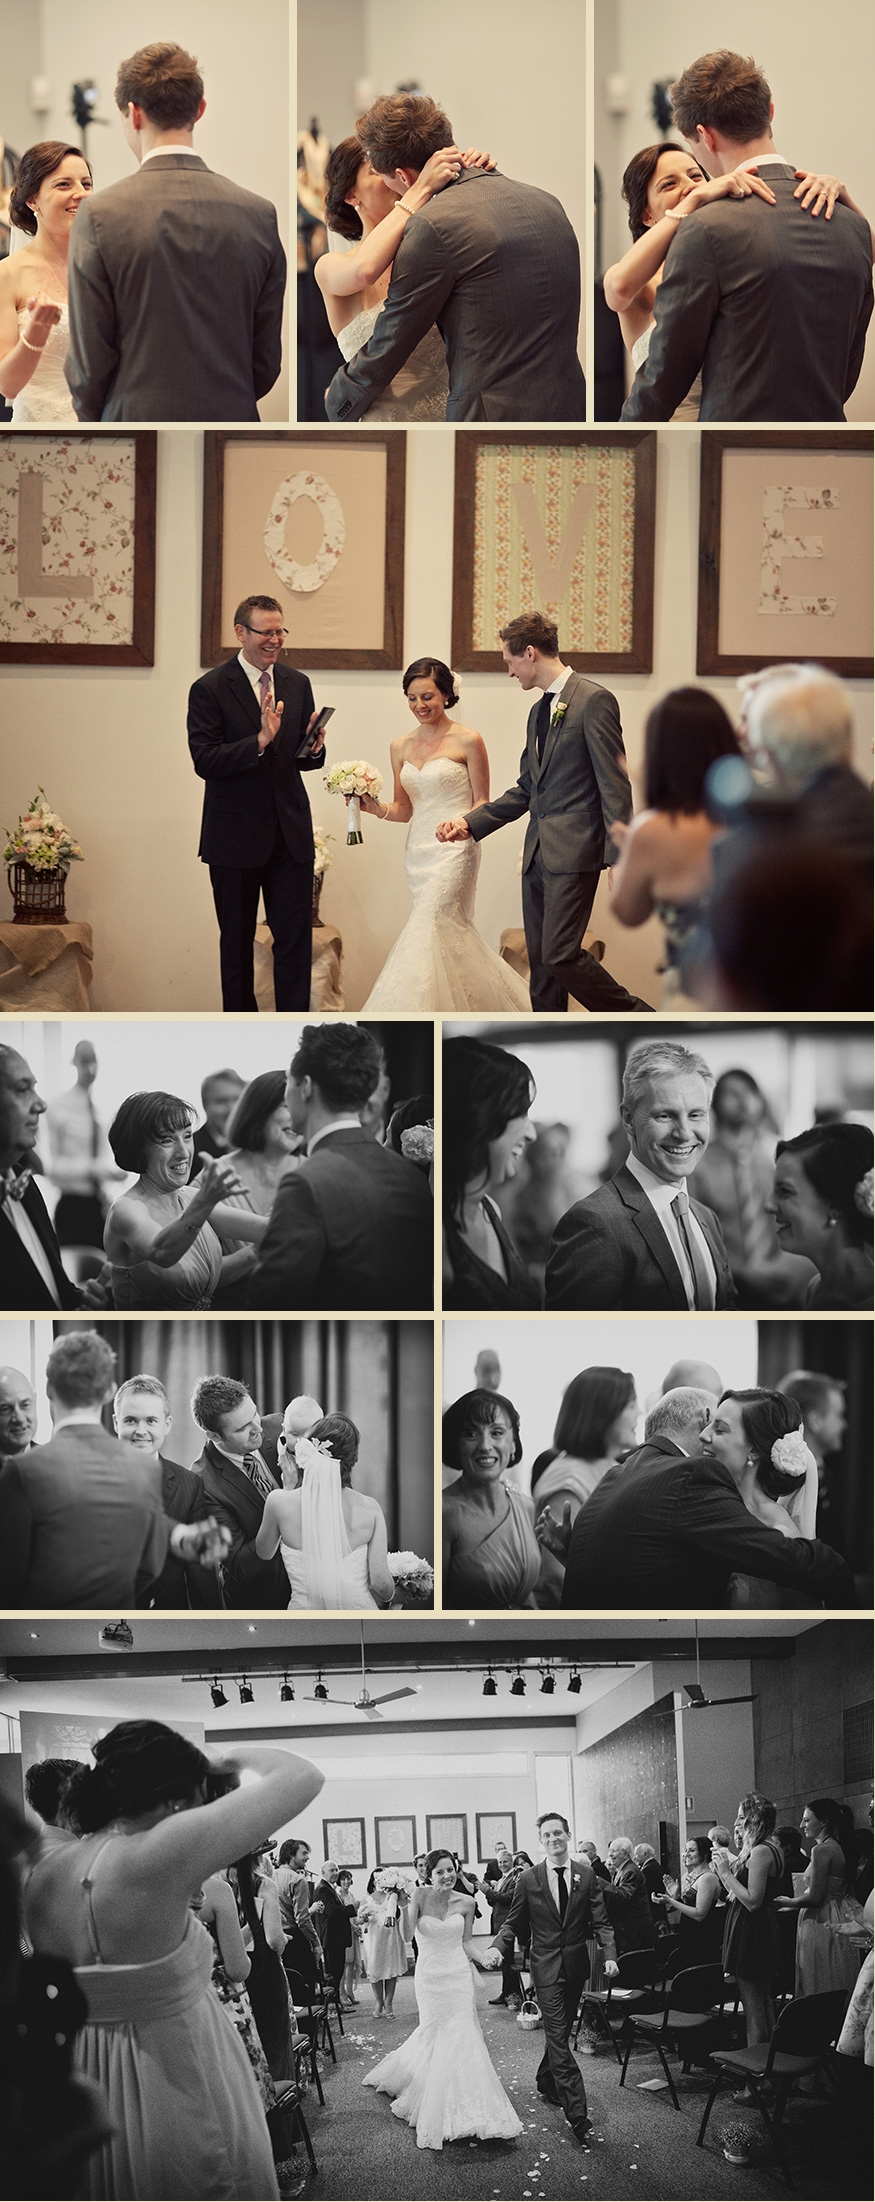 Brisbane Wedding Phoographer Blog-collage-1326246174532